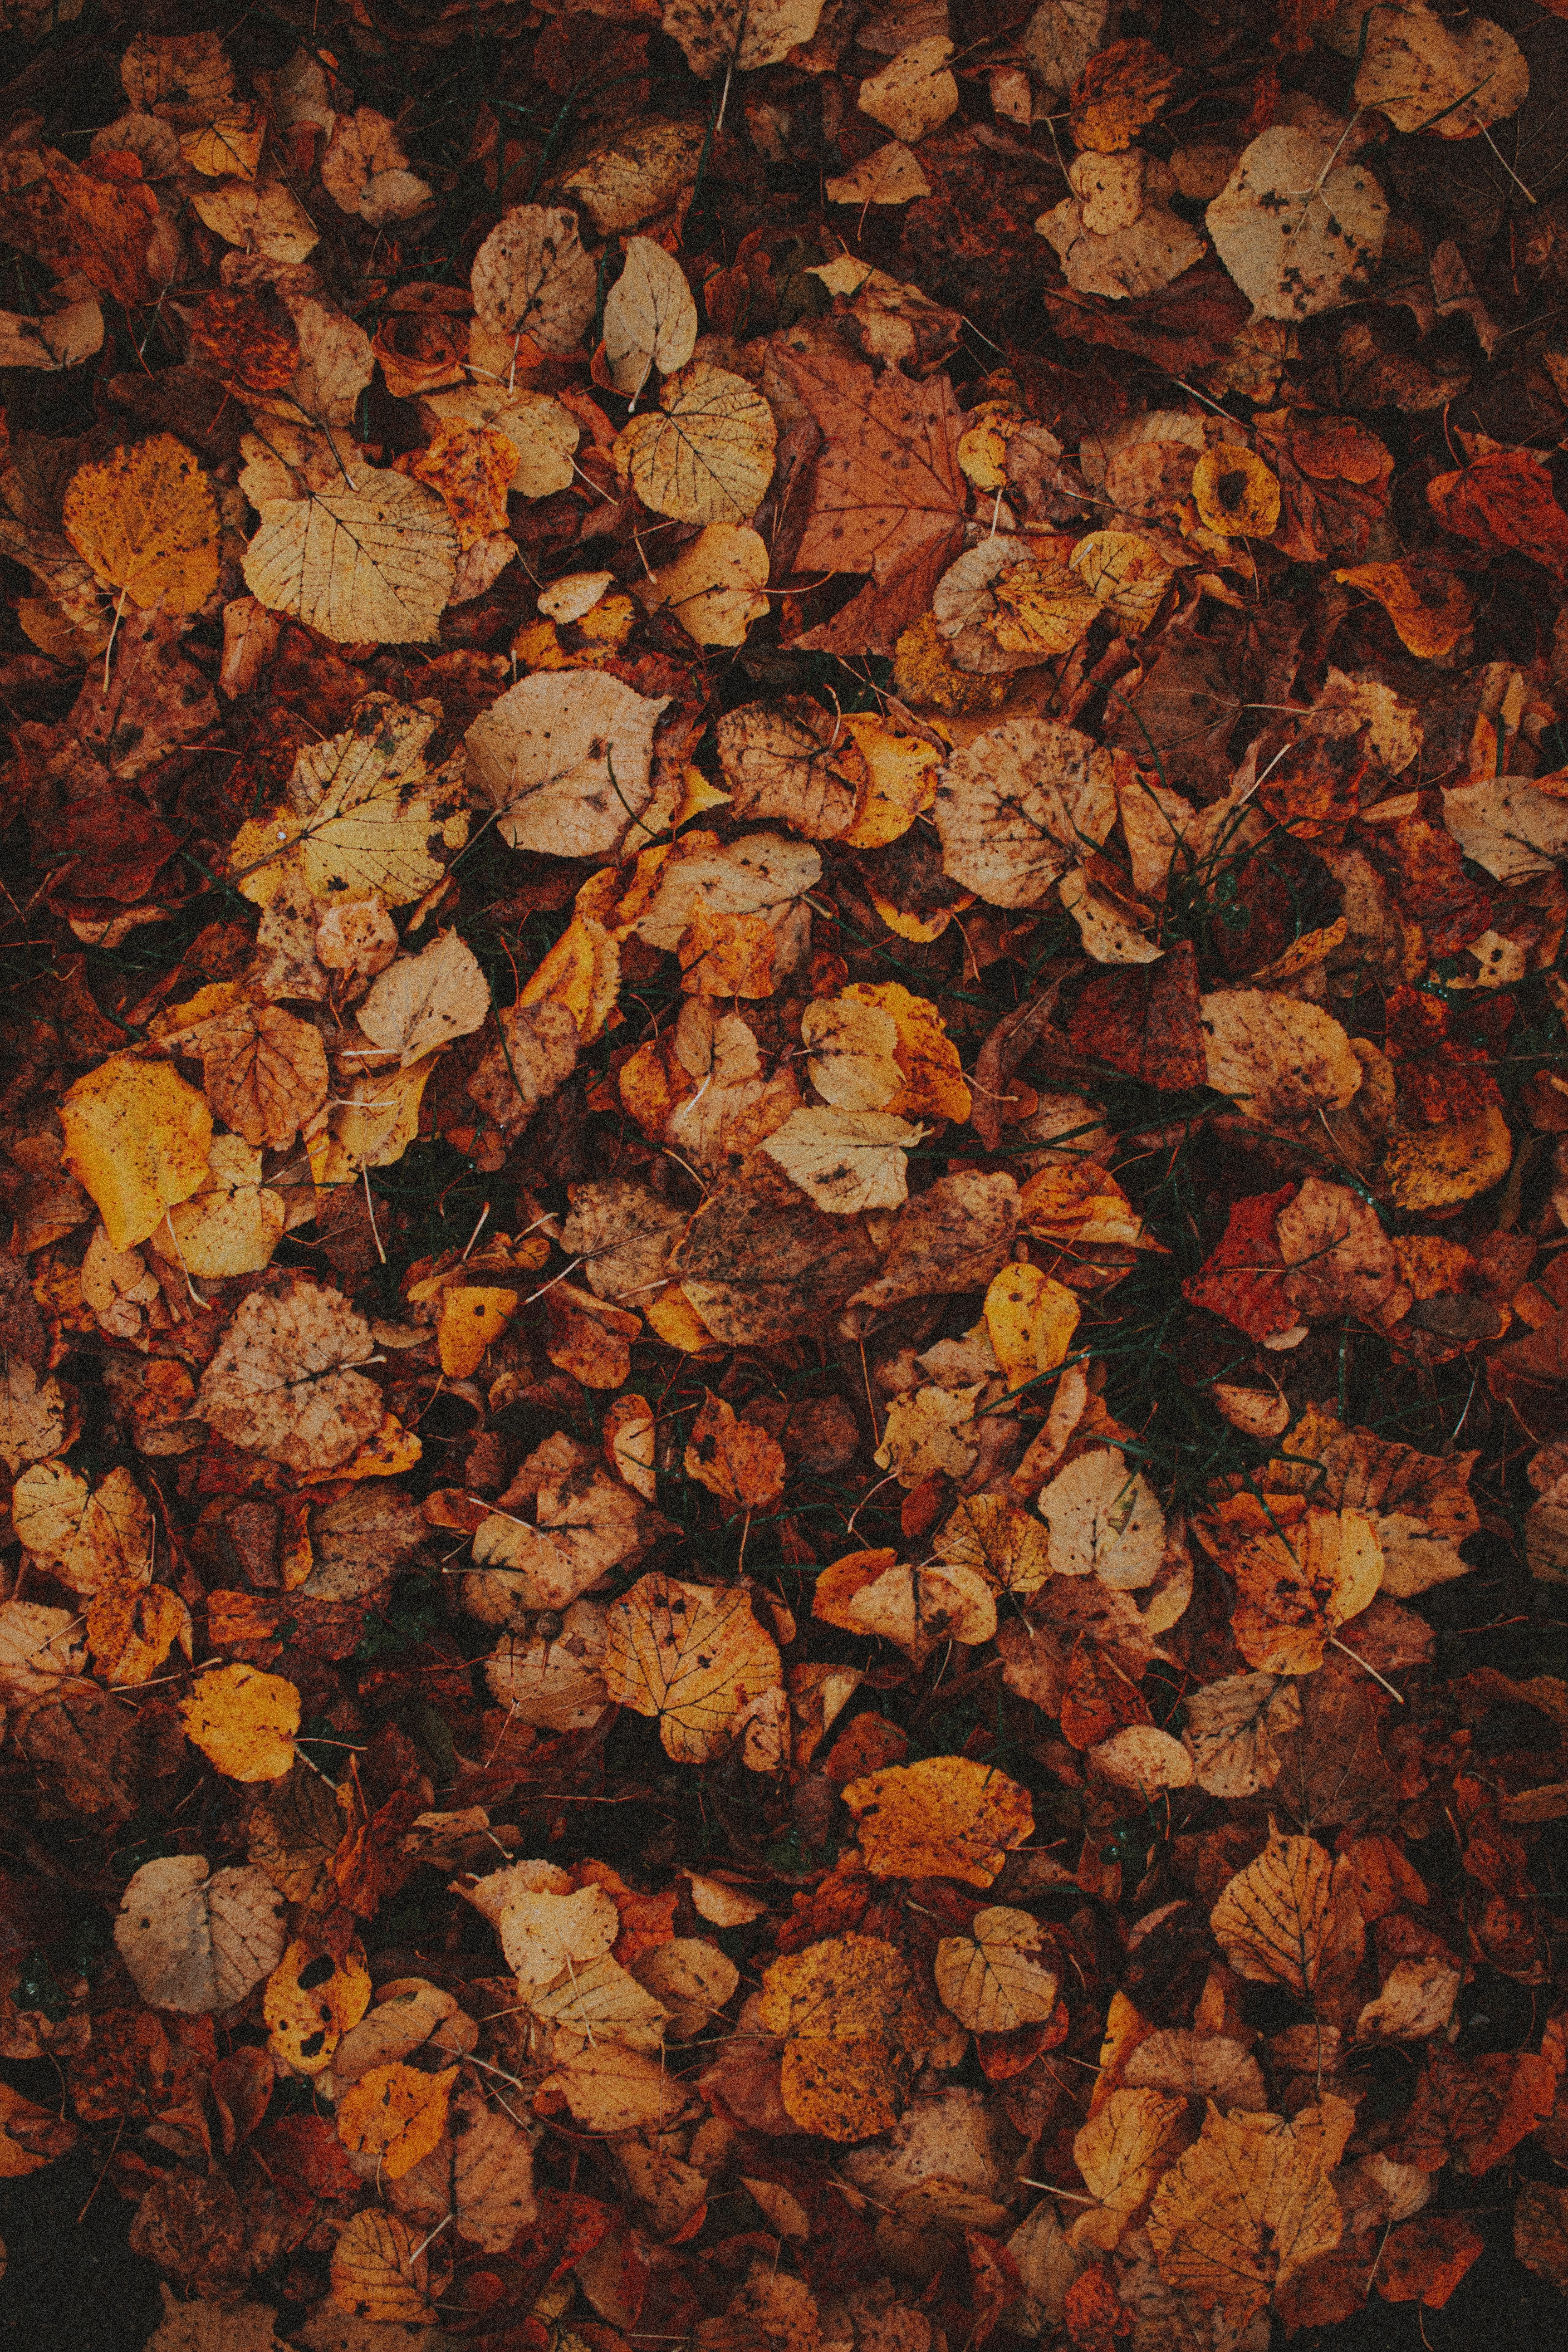 118930 download wallpaper Macro, Leaves, Grass, Autumn, Brown, Dry screensavers and pictures for free